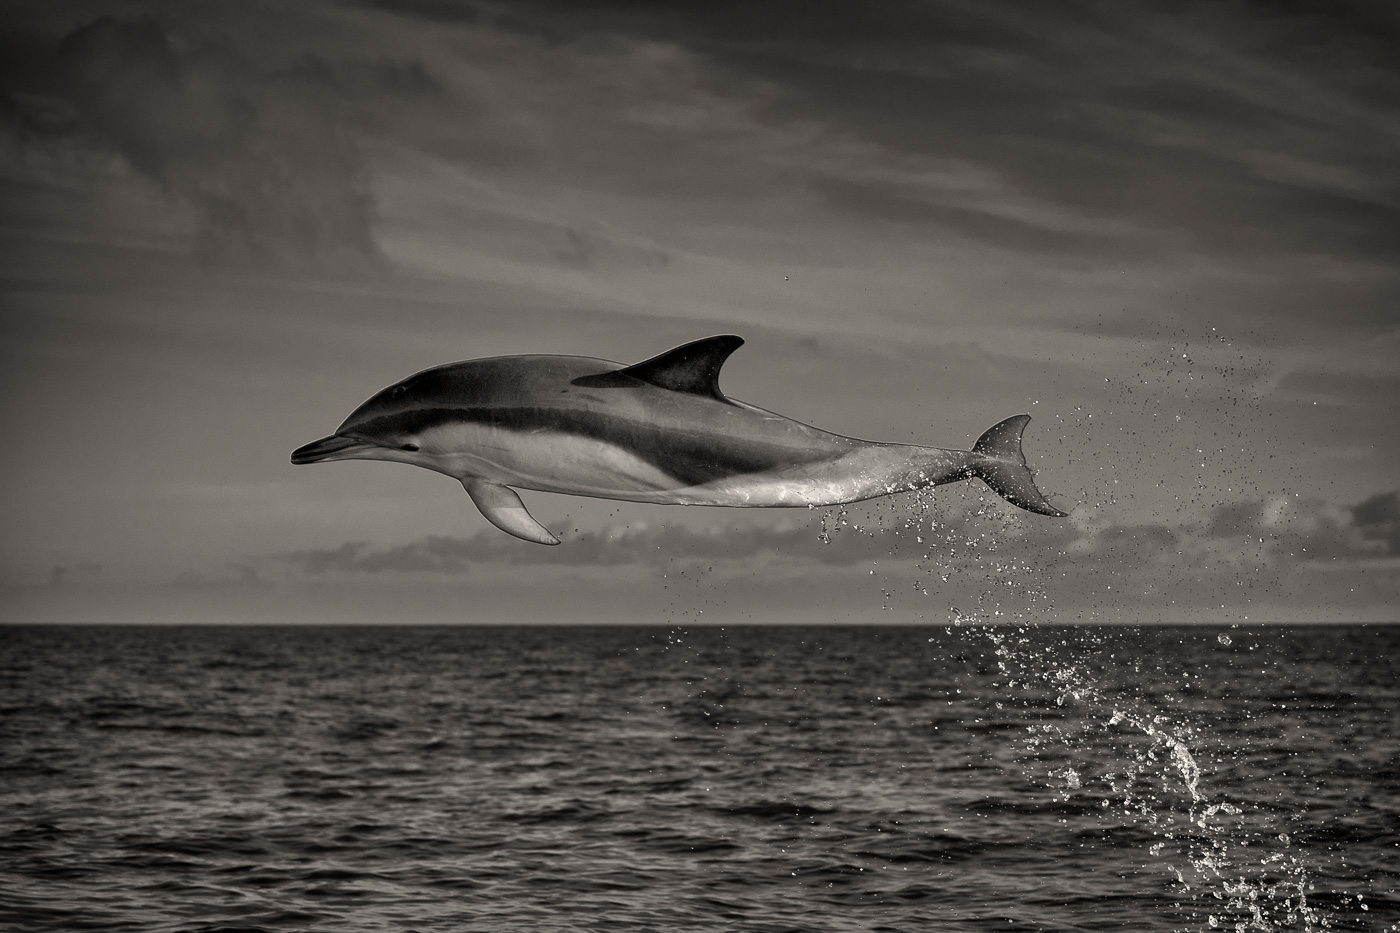 common dolphin in air black and white